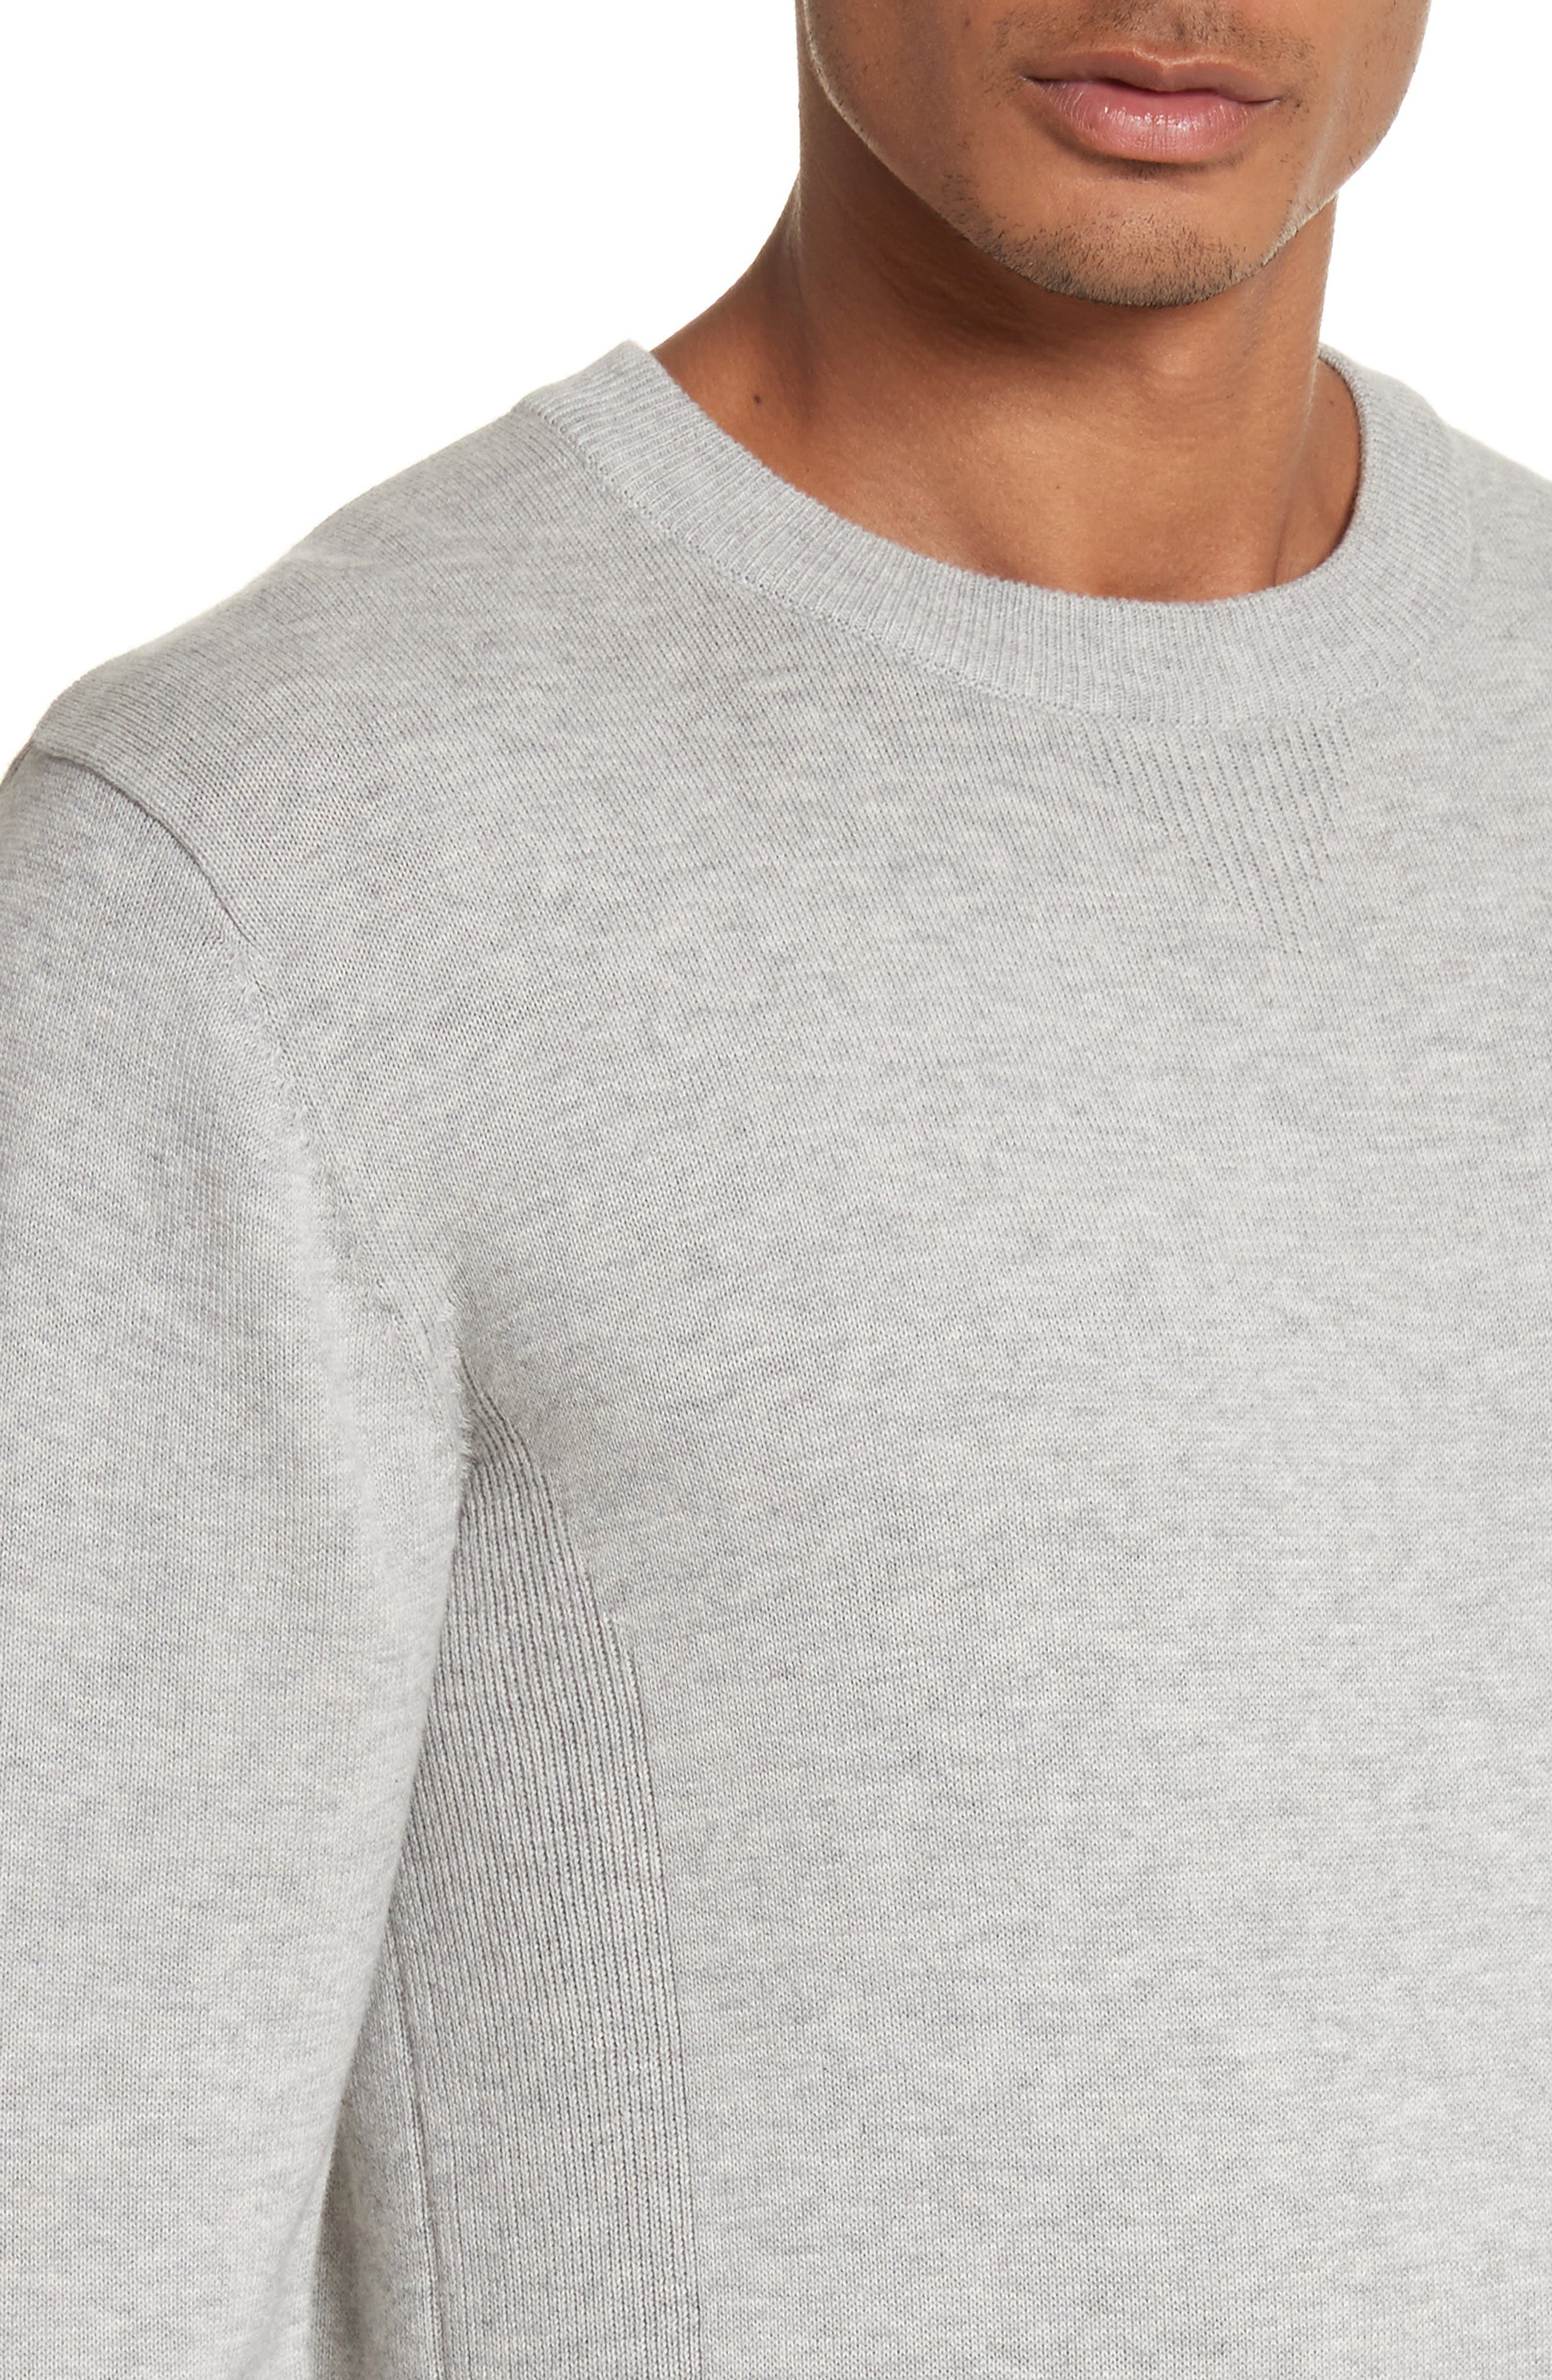 Merino Wool & Cashmere Pullover,                             Alternate thumbnail 4, color,                             Ash Heather